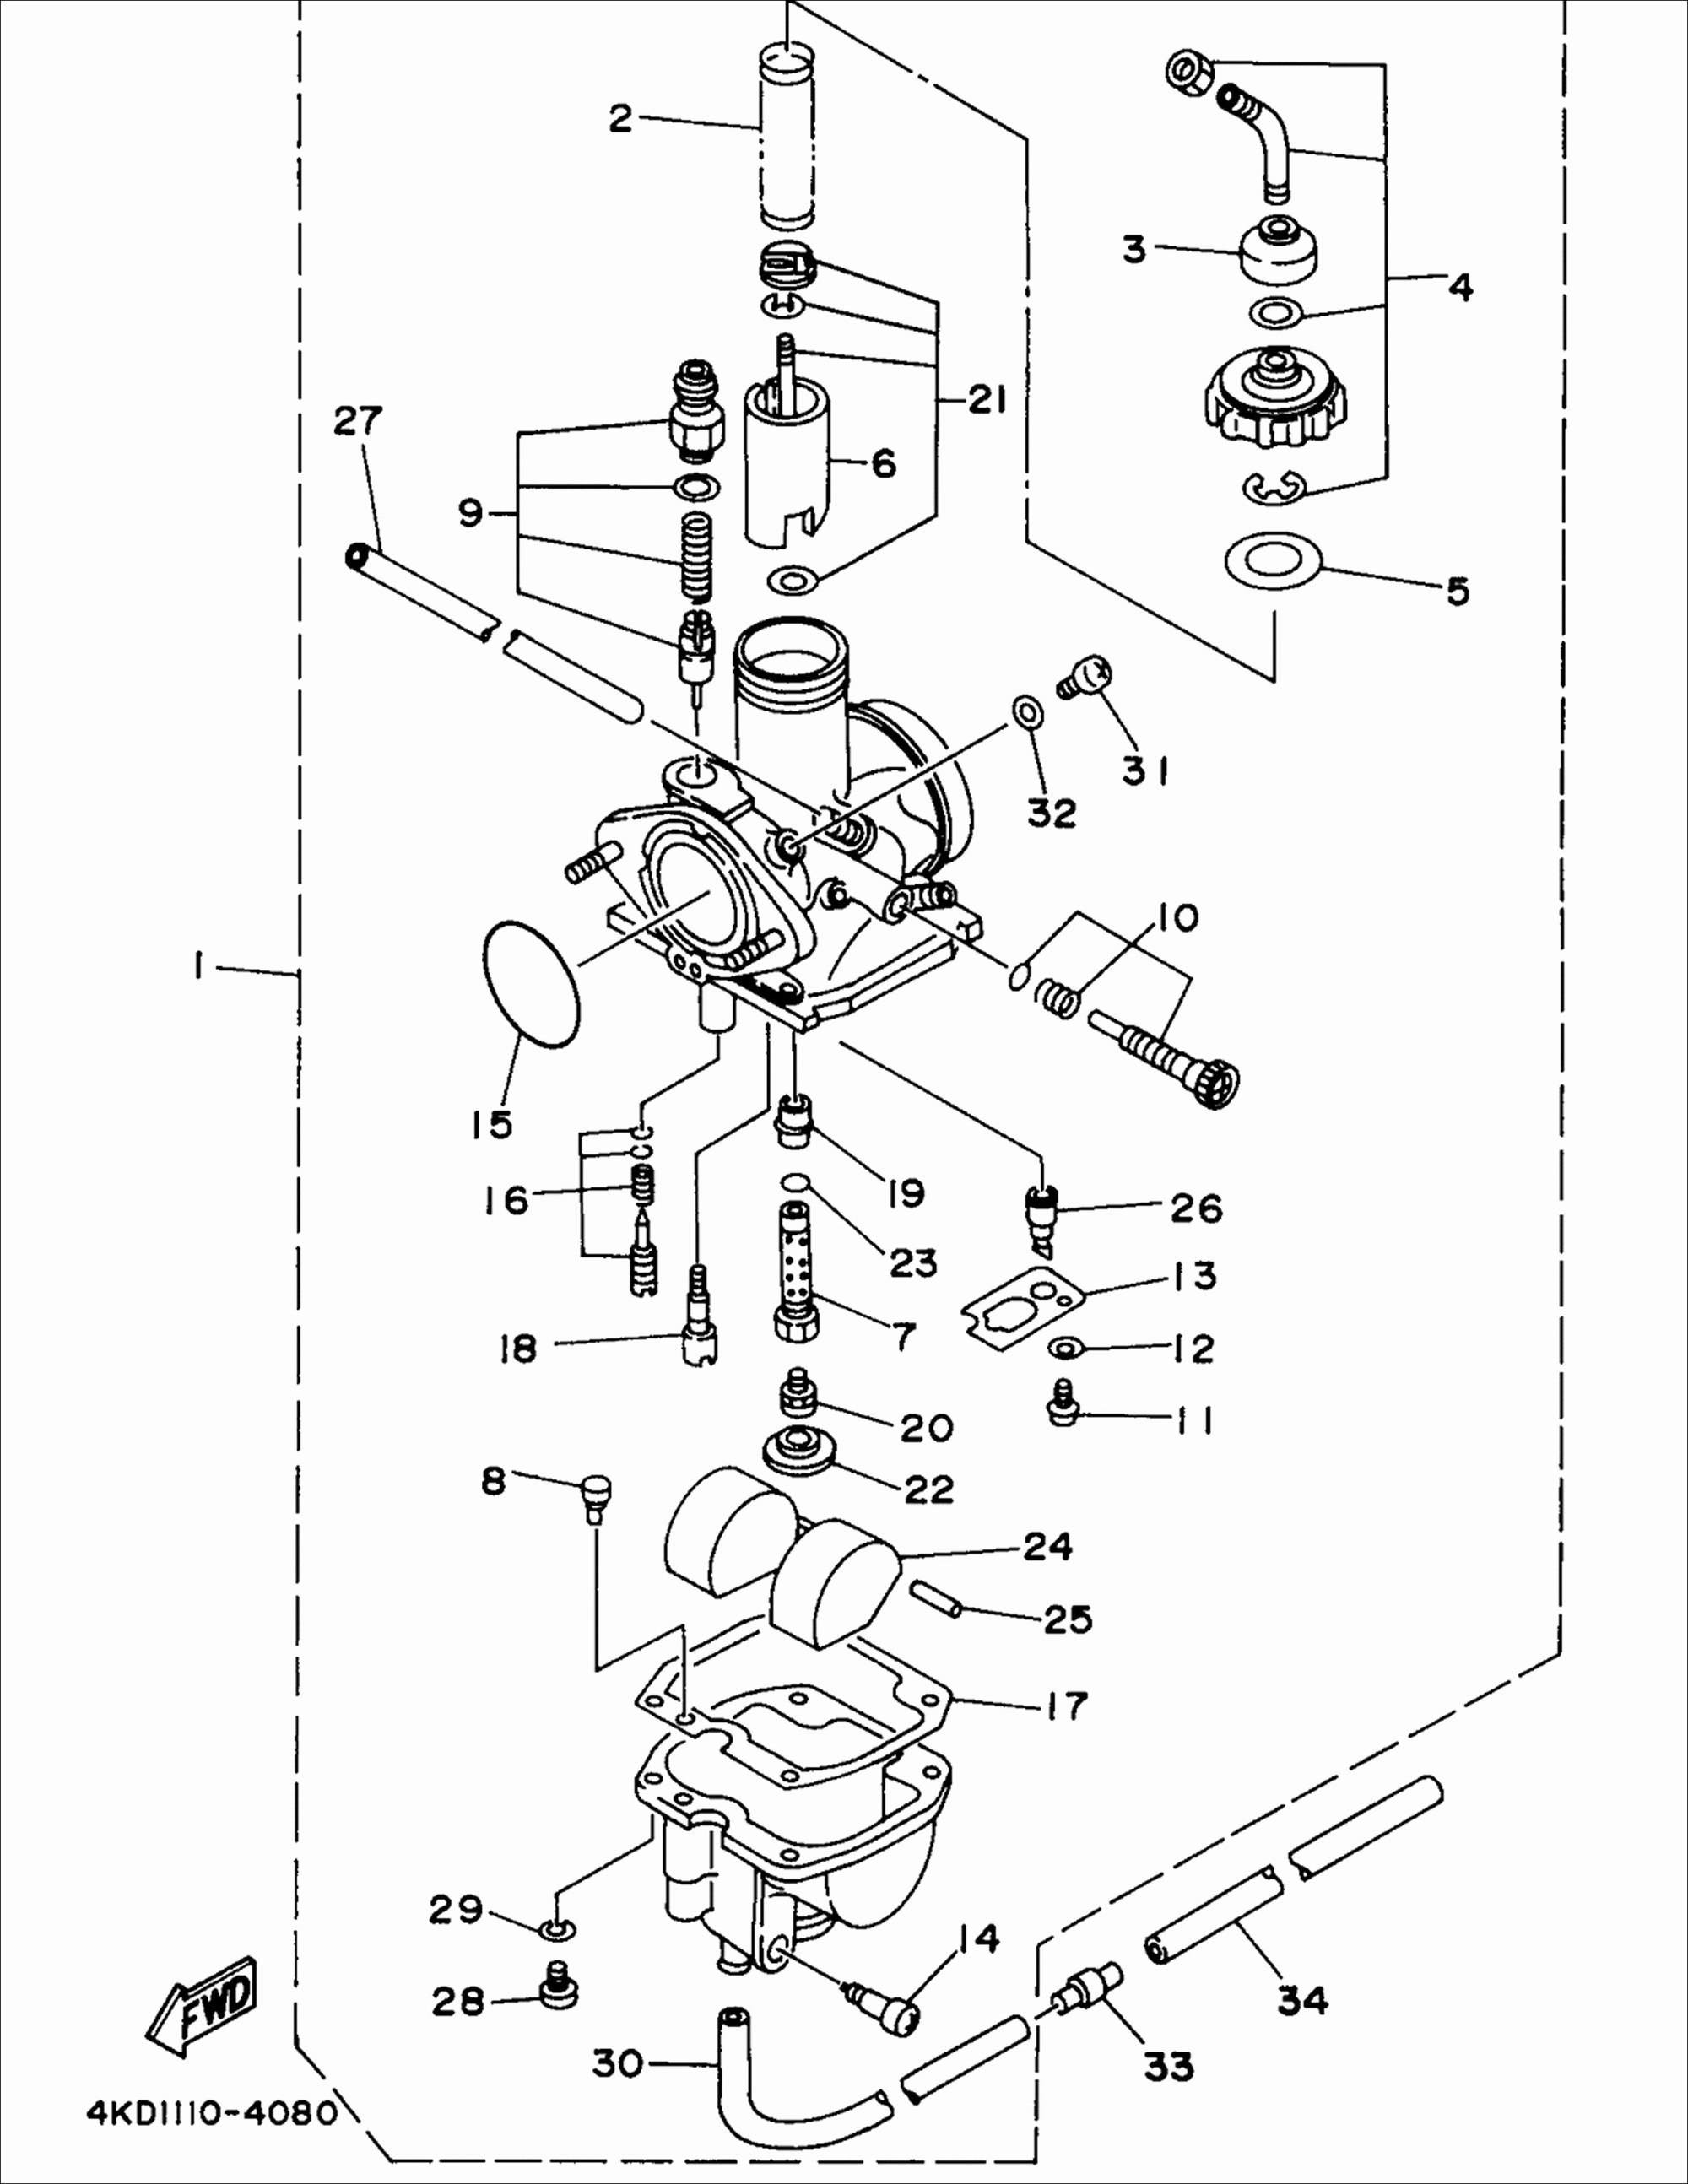 hight resolution of bonneville wiring diagram wiring diagram wiring diagram for 72 pontiac grand prix get free image about wiring